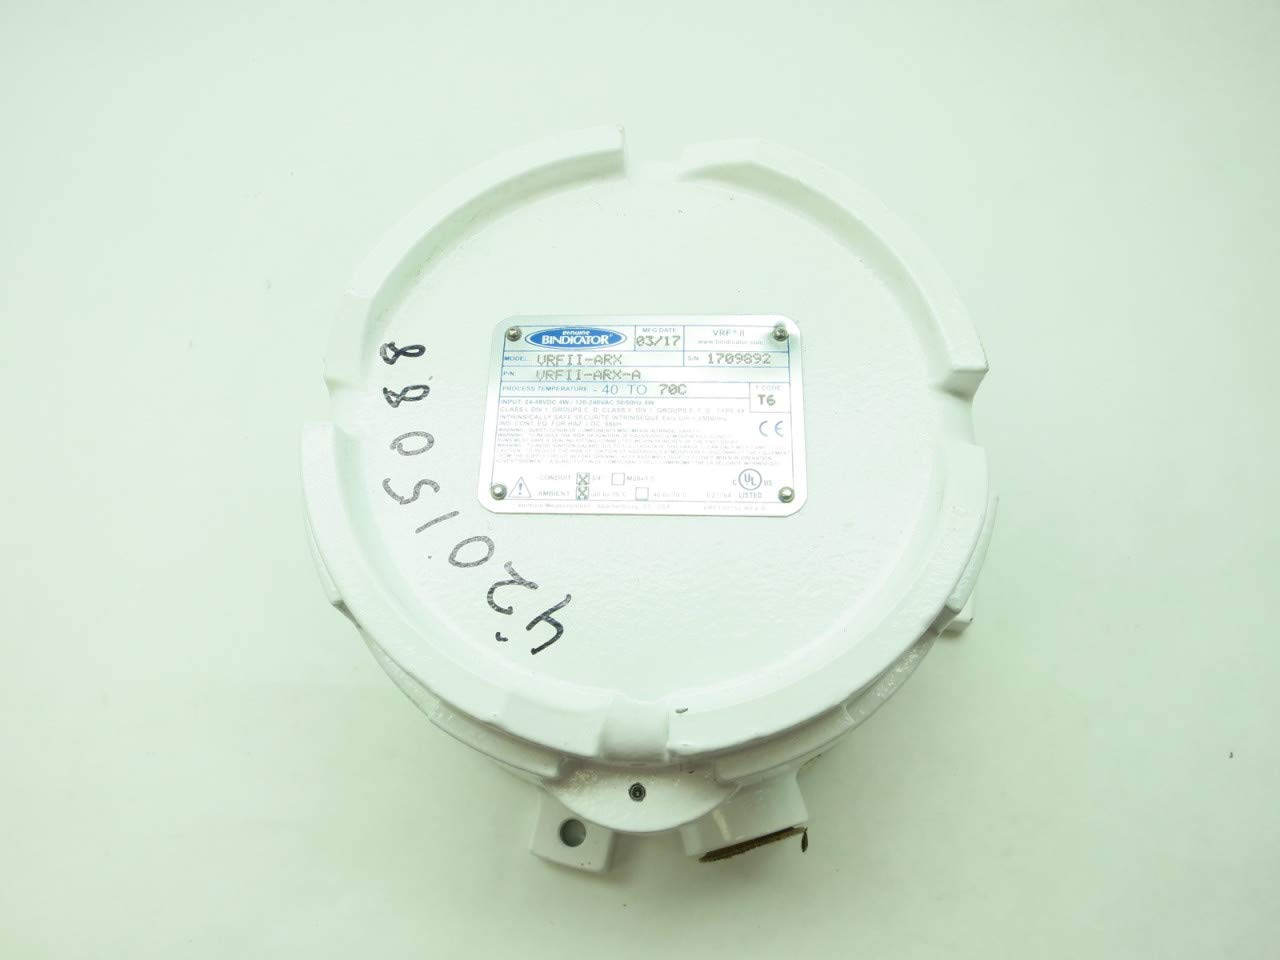 BINDICATOR VRFII-Arx Point Level SENSORS 120-240V-AC D639261: Amazon.com: Industrial & Scientific